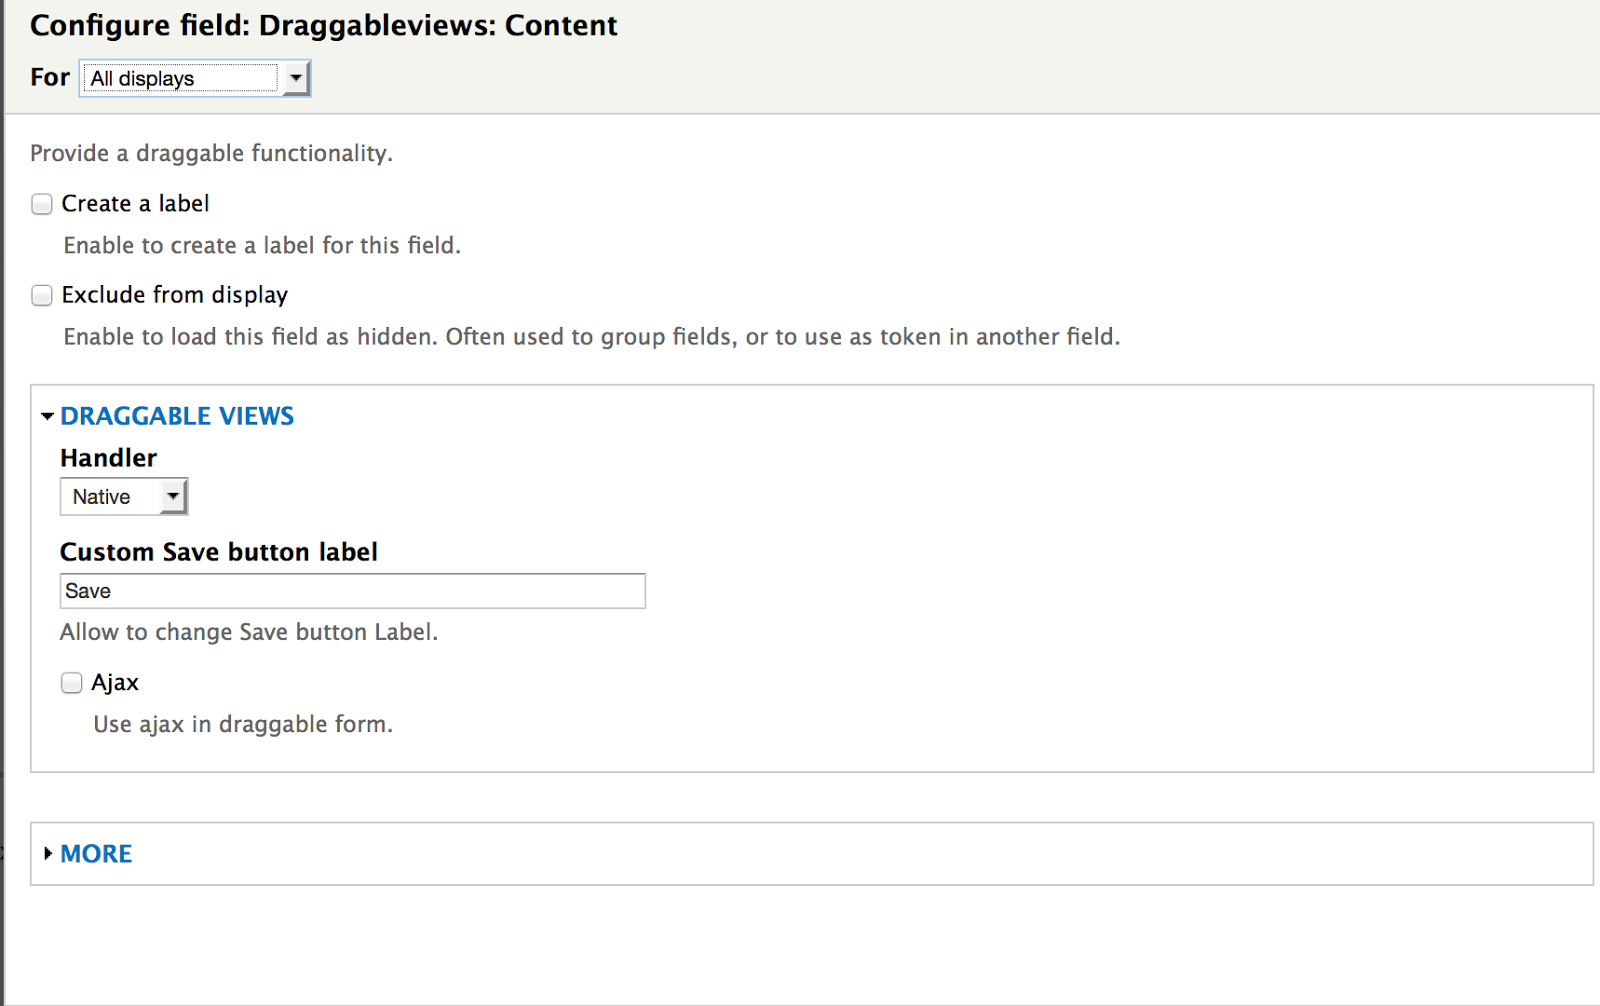 Draggableviews: Content field setting